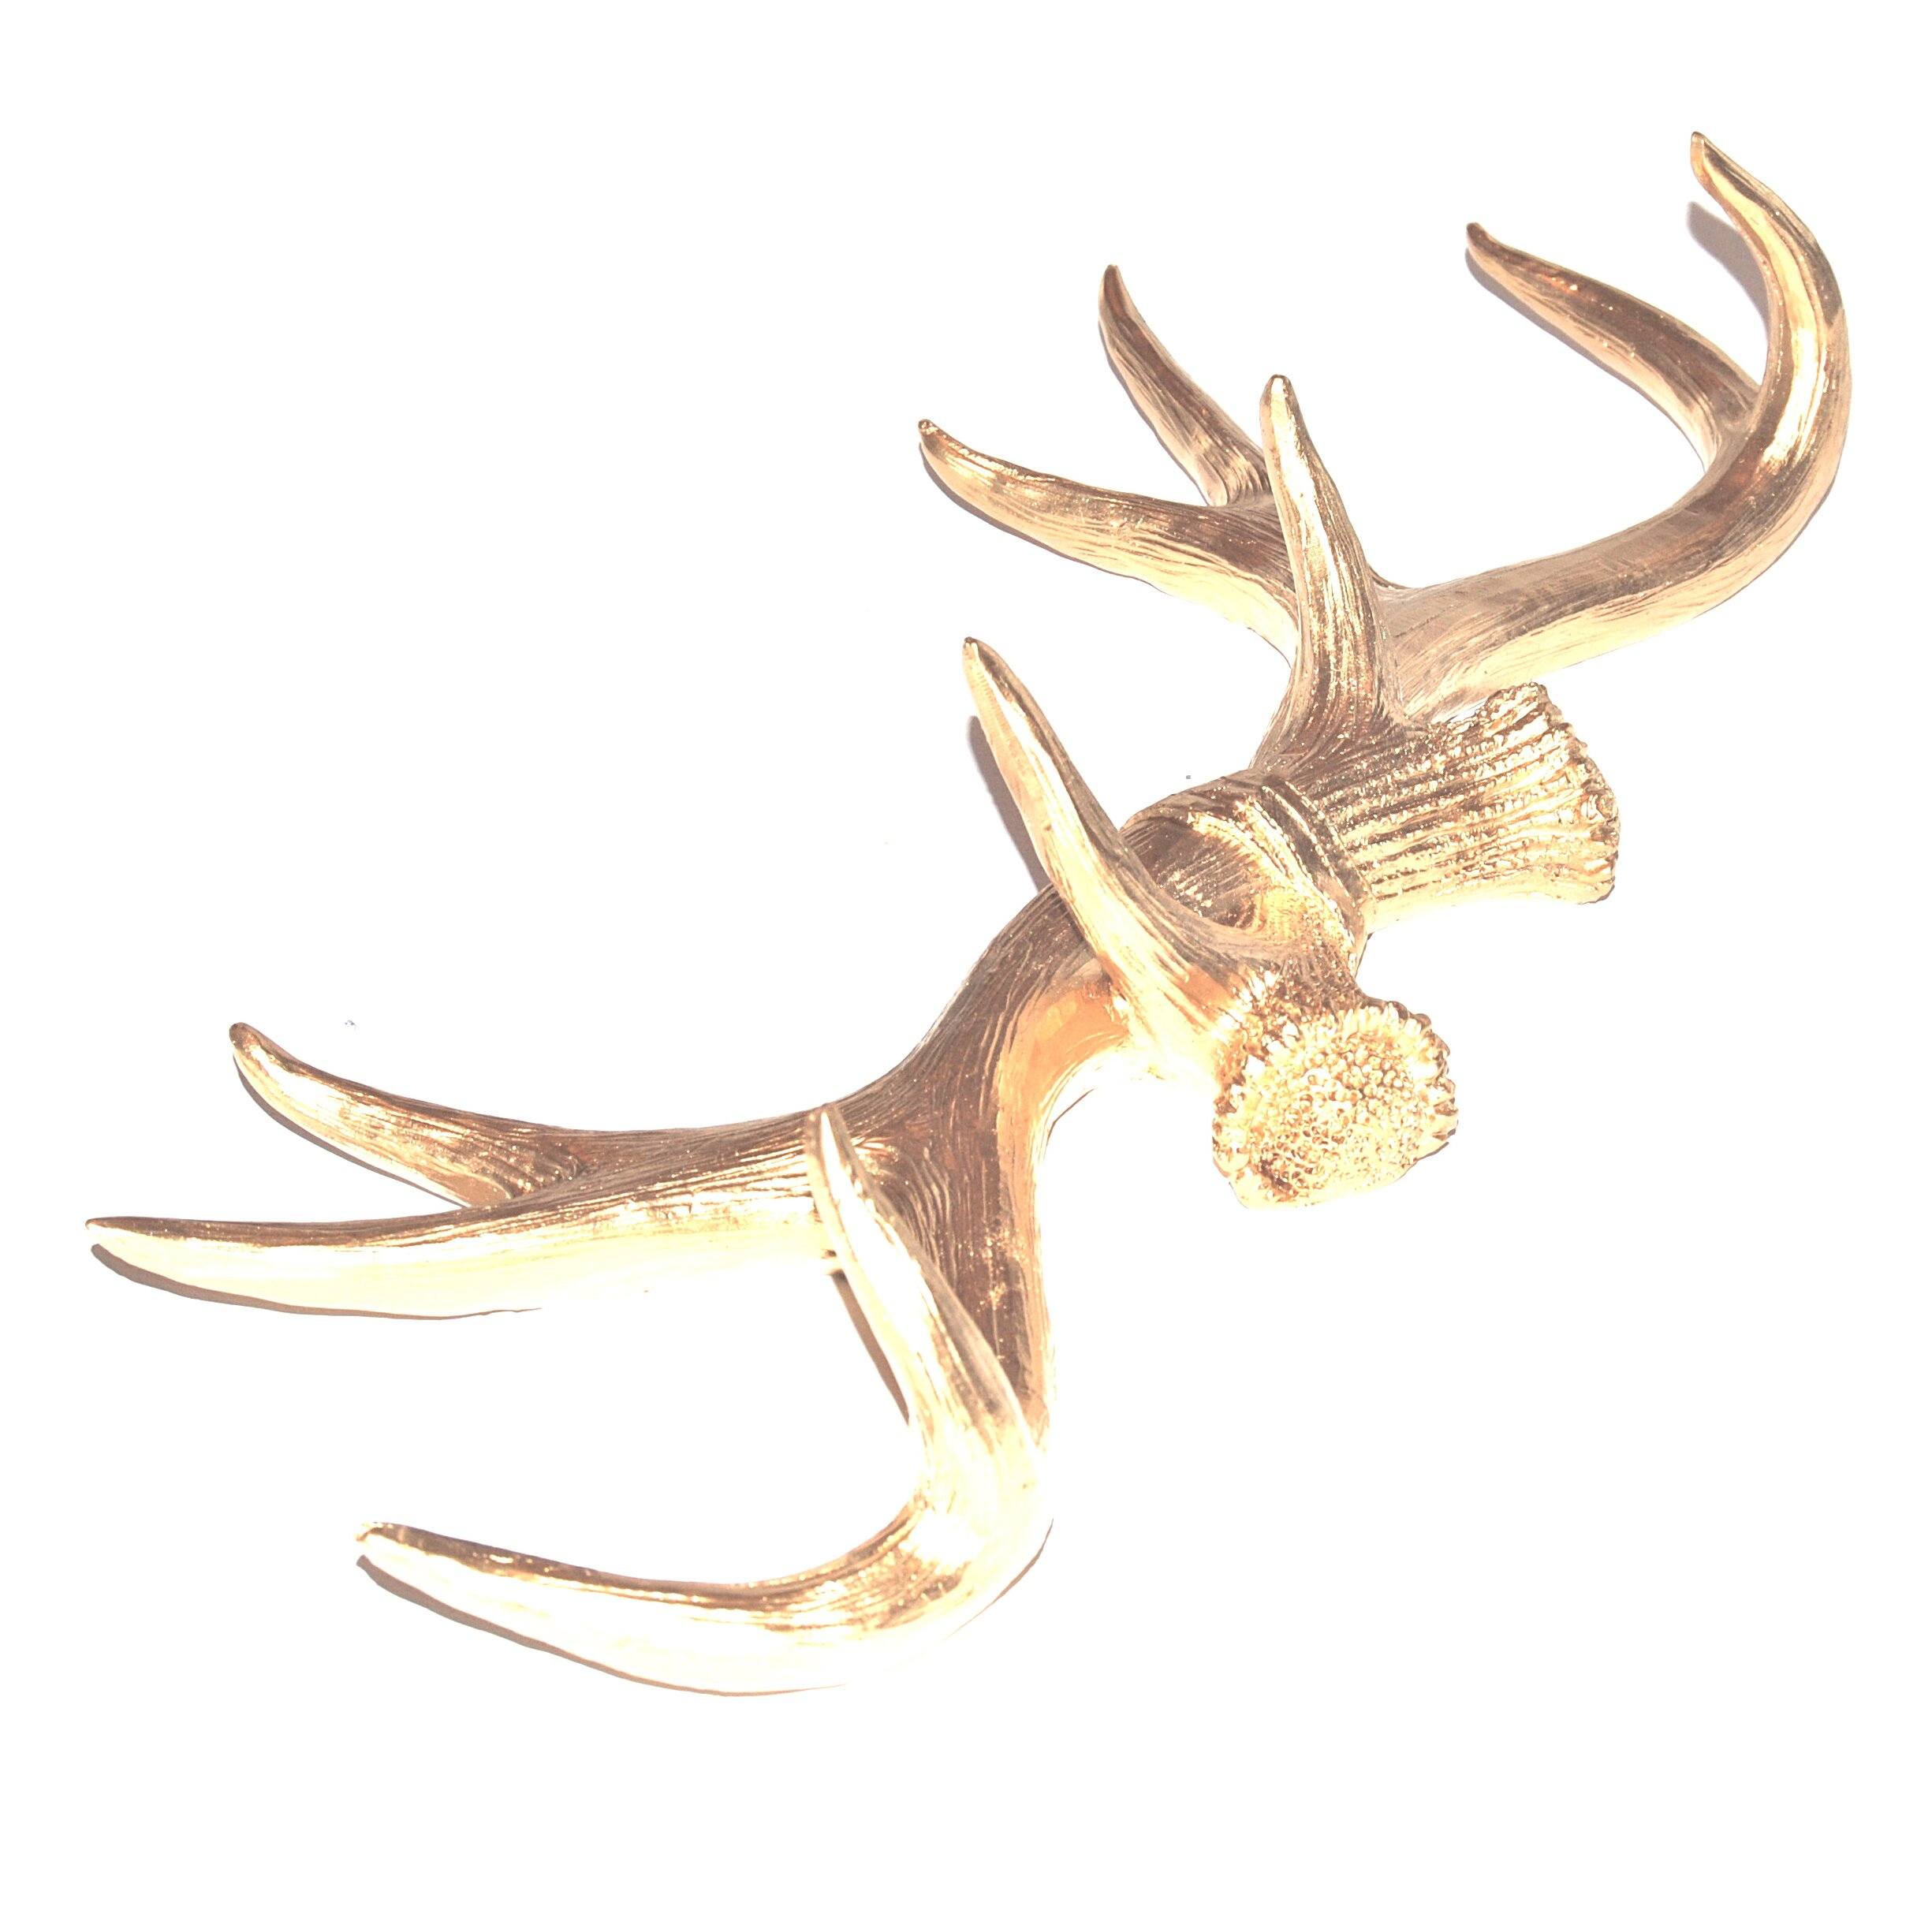 Near and Deer Near and Deer Faux Taxidermy Antler Wall Decor